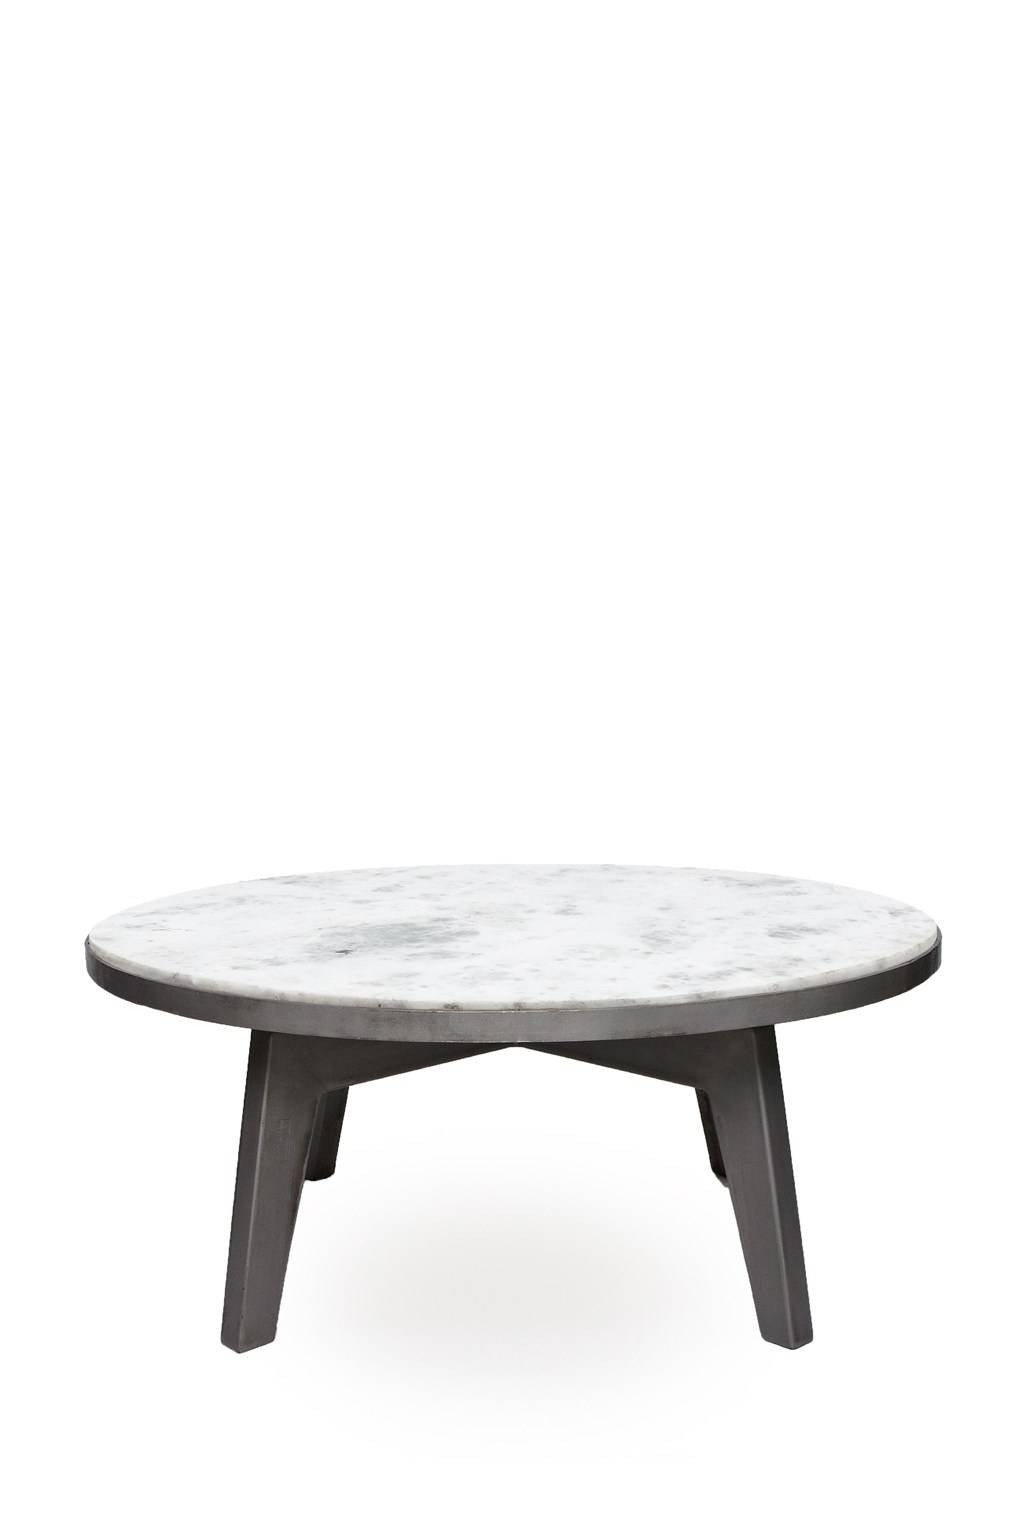 Coffee Table, Marble Coffee Table Round Marble Top Coffee Table inside Marble Round Coffee Tables (Image 9 of 30)